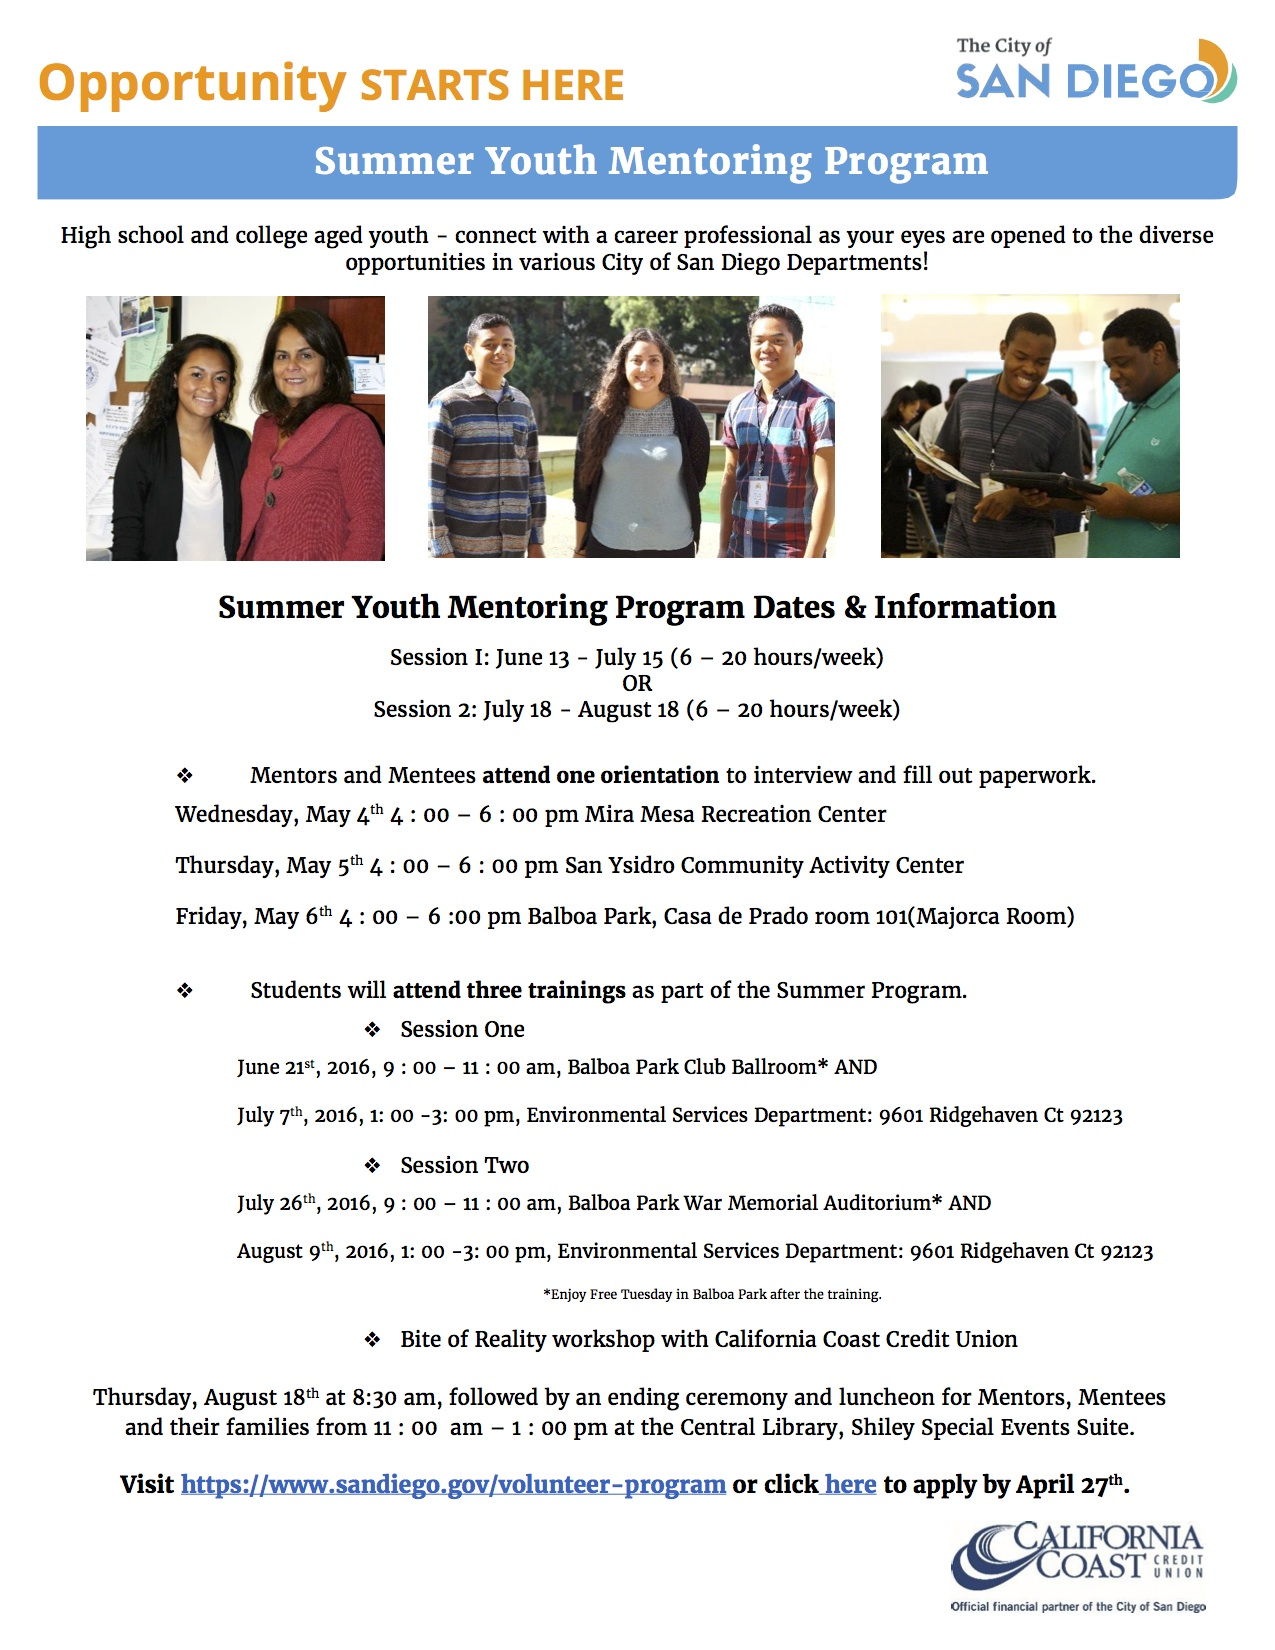 Youth Mentoring Program